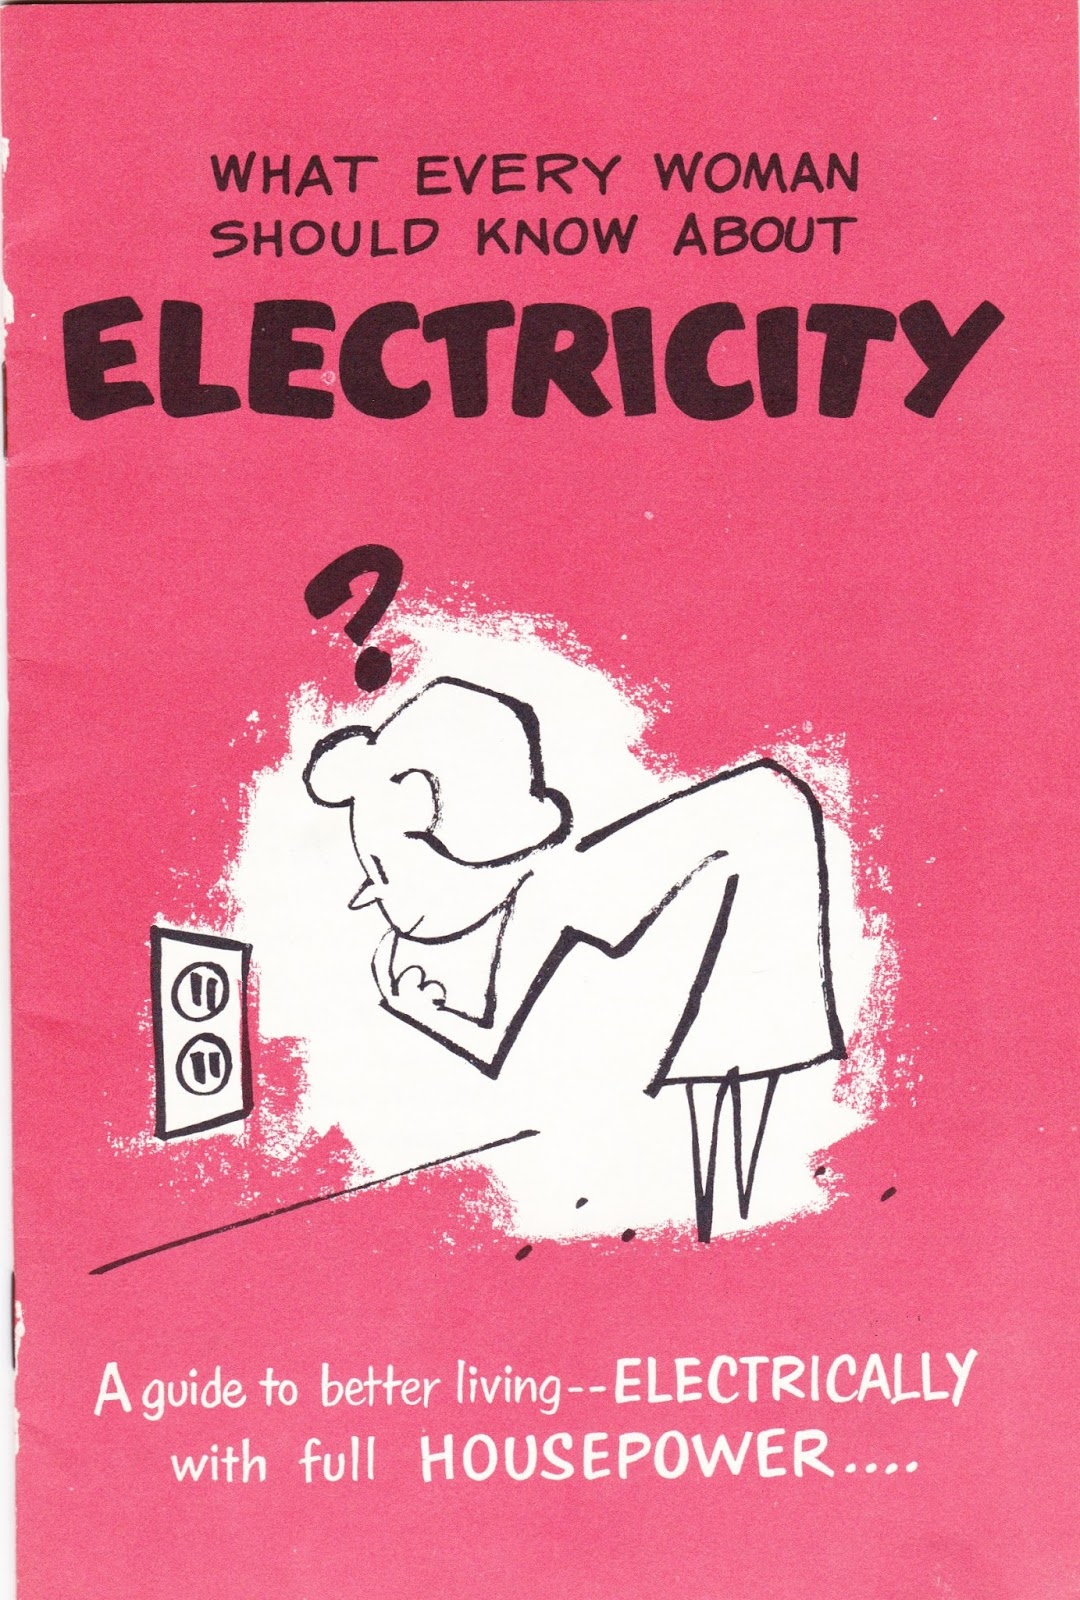 Garage Sale Finds: What Every Woman Should Know About Electricity